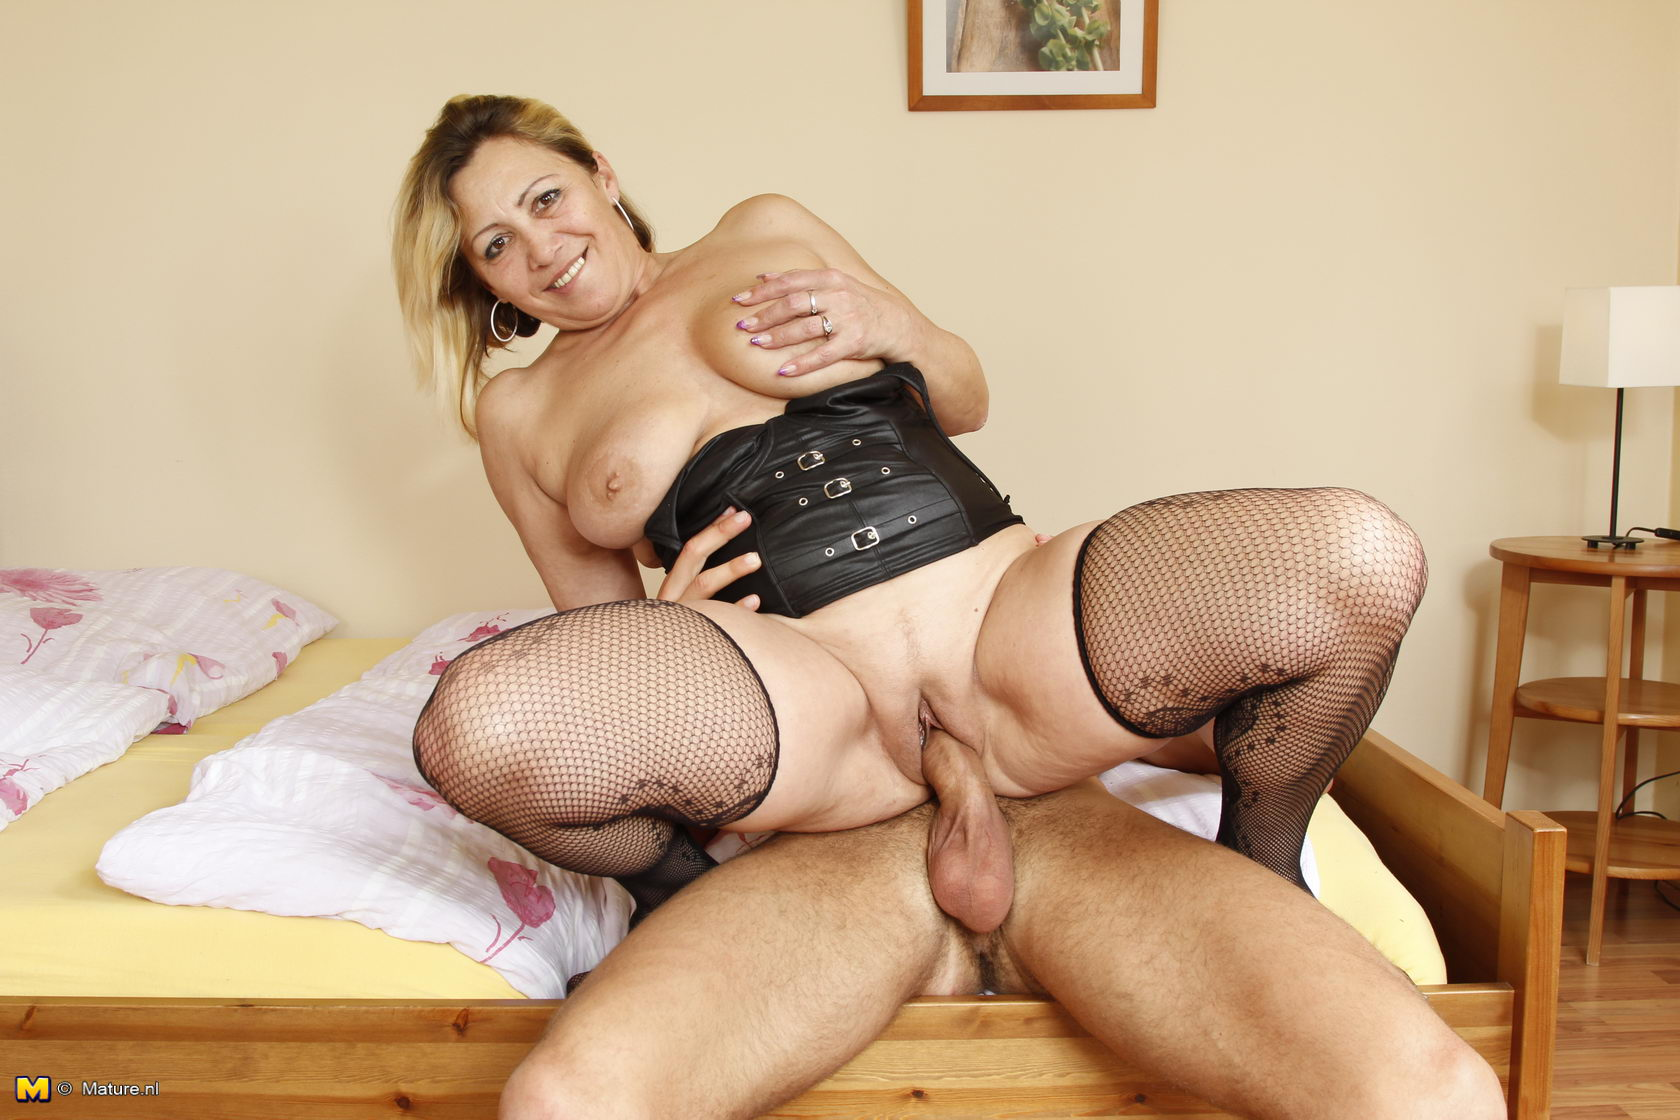 Mature sex izle 4 фотография